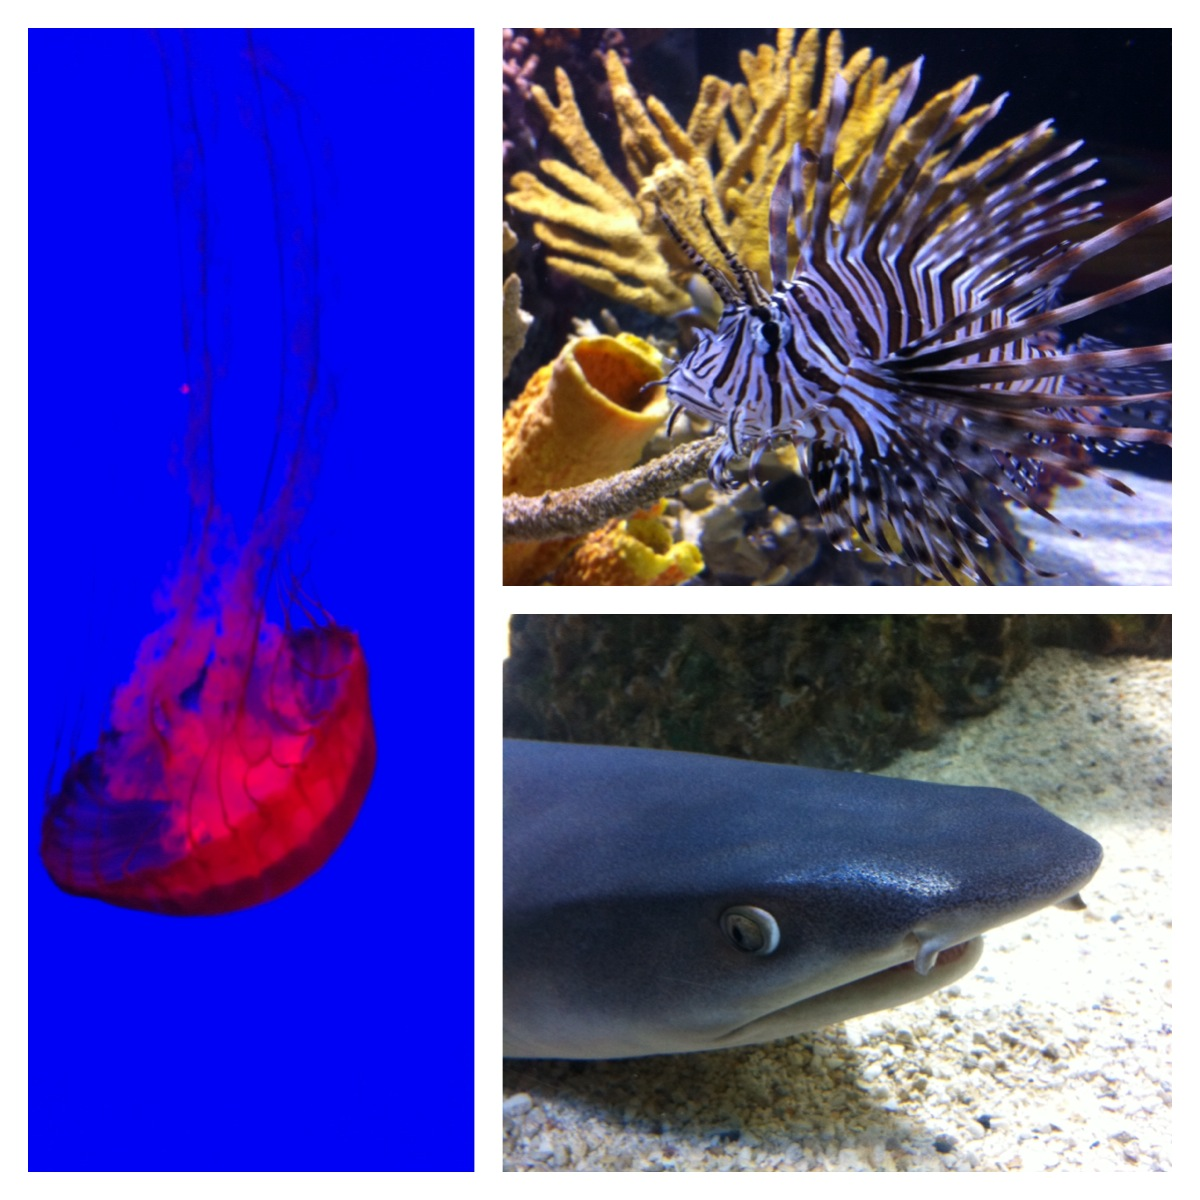 Fish aquarium in canada - Jelly Fish Lionfish Shark